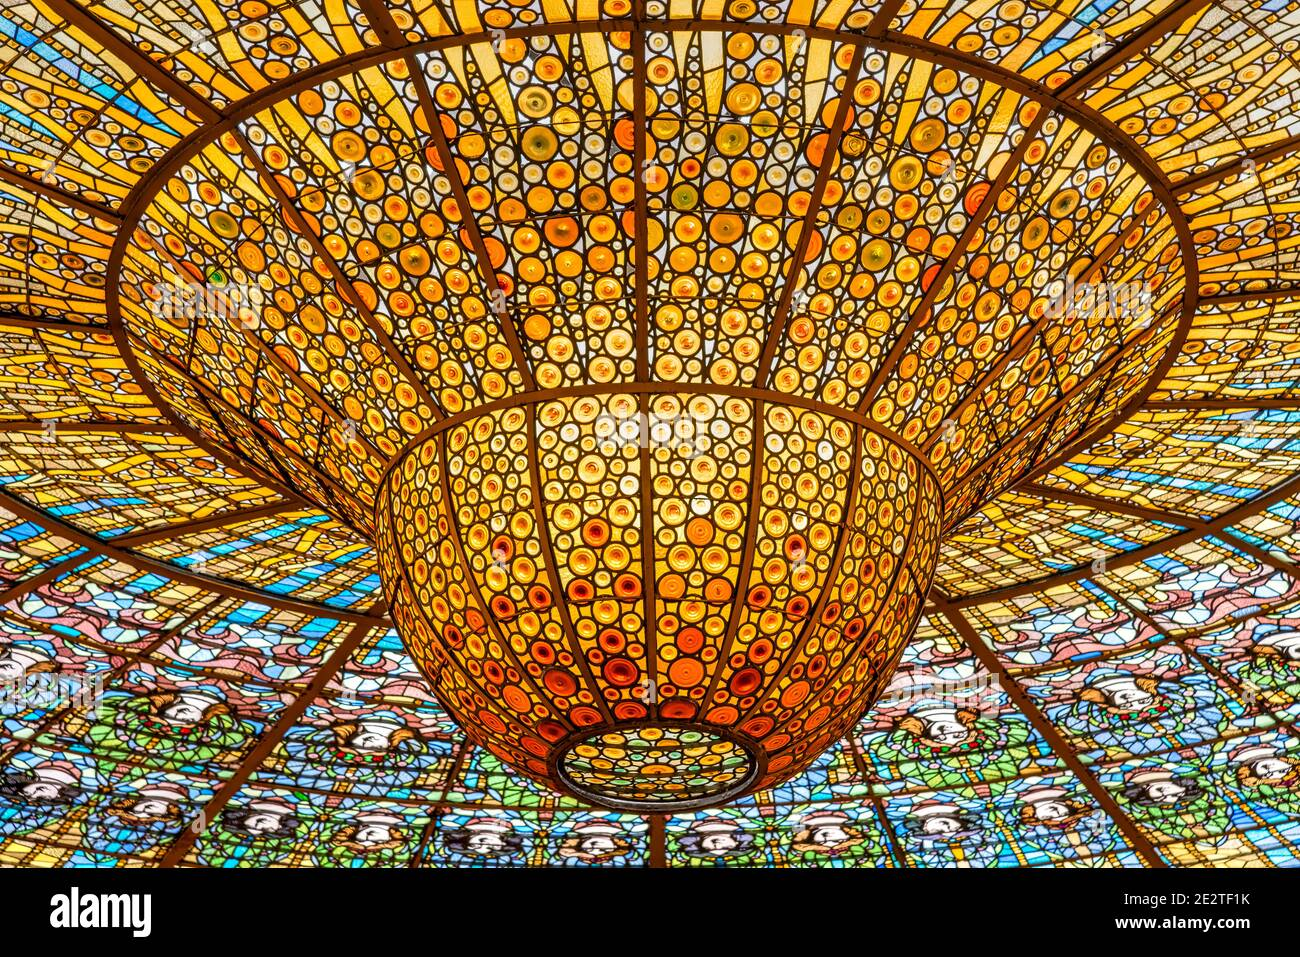 Stained-glass skylight, Palace of Catalan Music concert hall, Barcelona, Catalonia, Spain Stock Photo